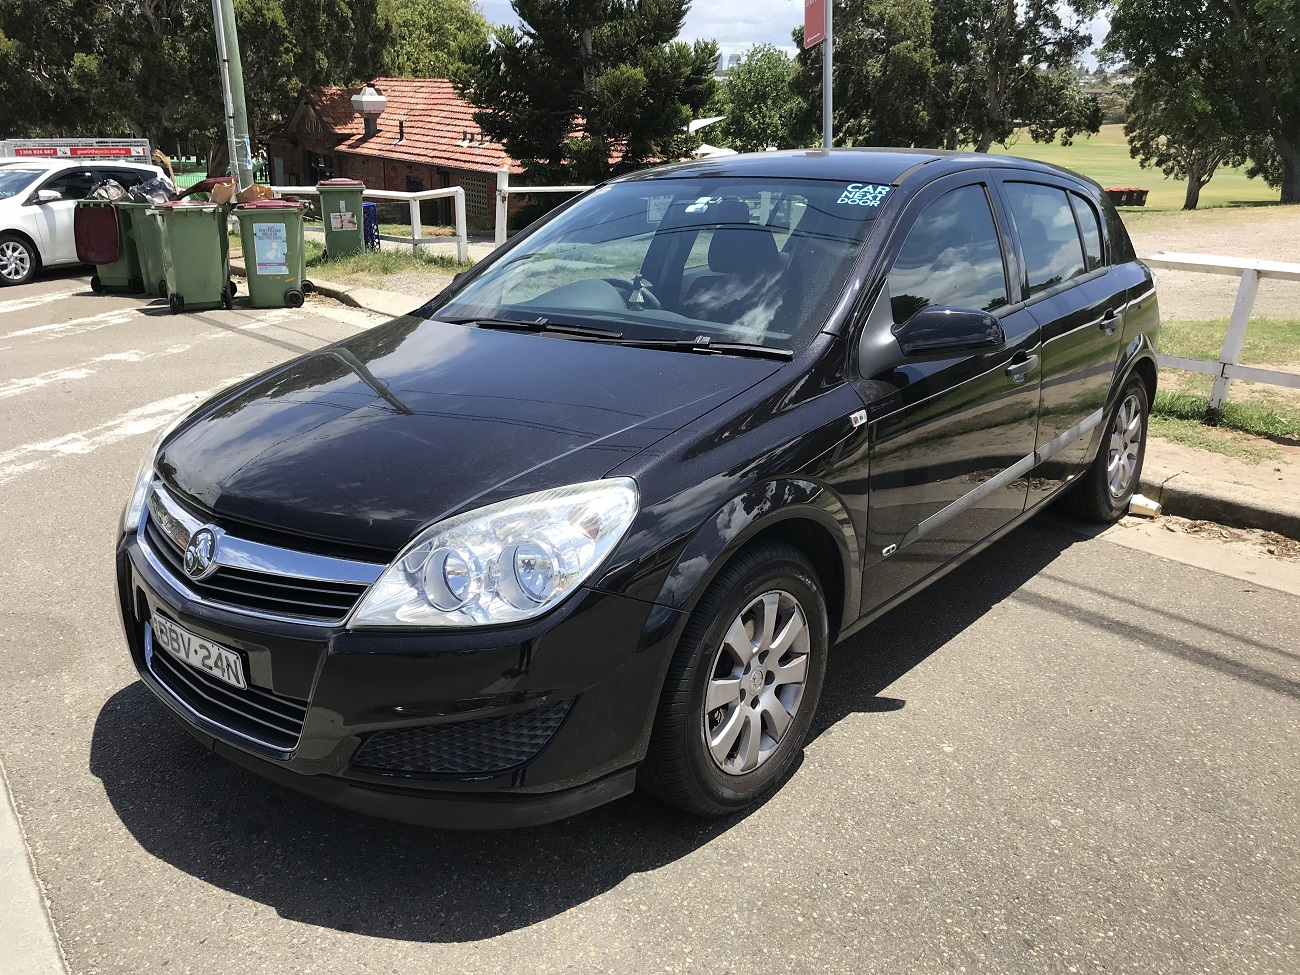 Picture of Laura's 2007 Holden Astra